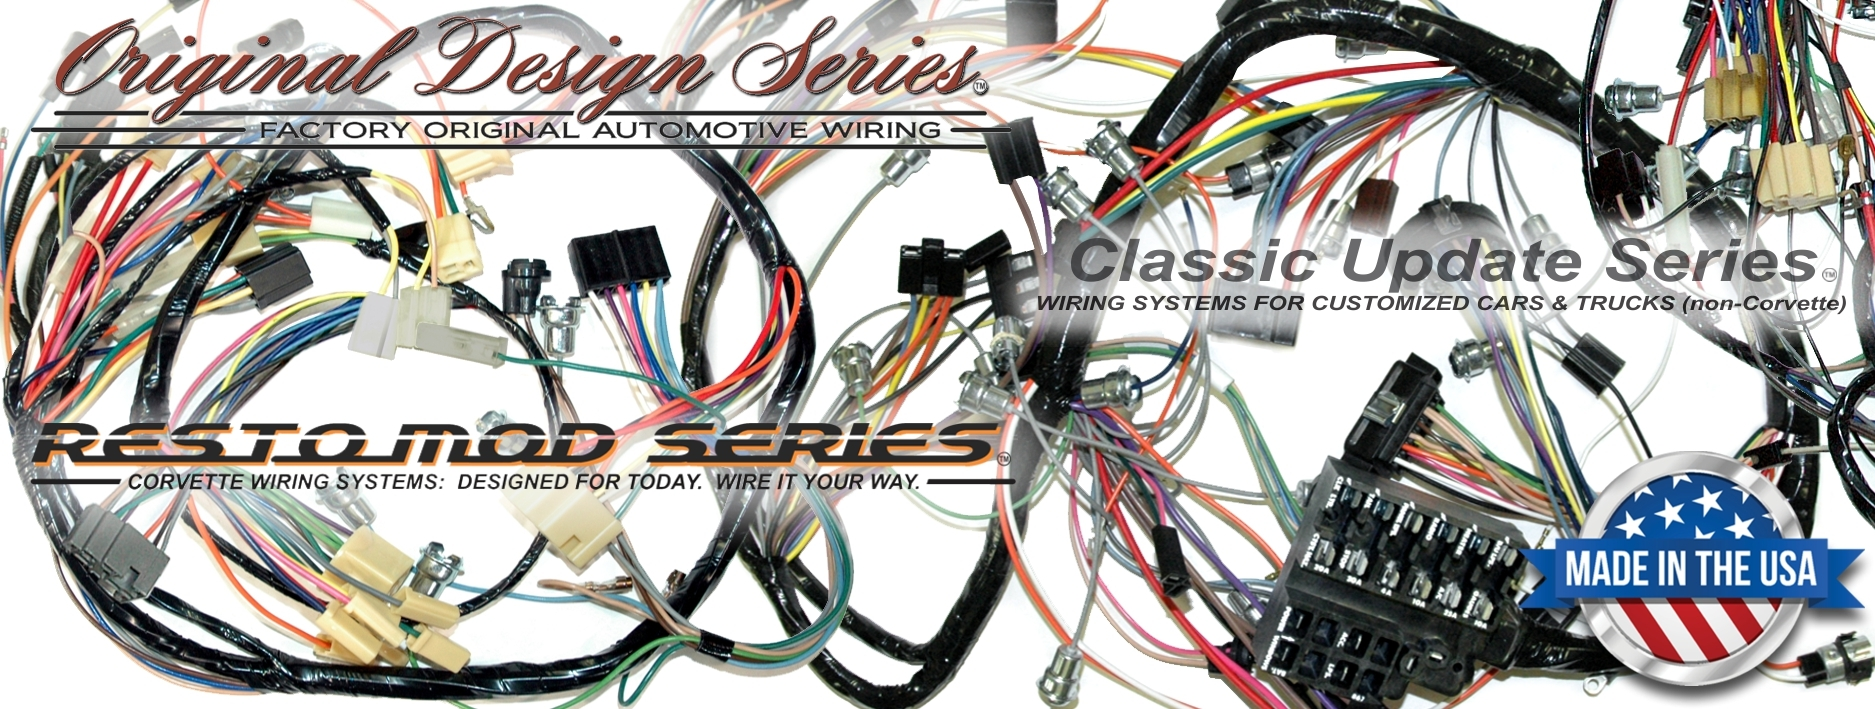 1977 Tran Am Wiring Harness - 8.16.asyaunited.de • Firebird Electric Window Wire Harness on electric wire leads, electric wire nut, electric wire cover, electric wire lock, electric wire relay, electric wire clamp, electric wire post, electric wire kit, electric wire strap, electric wire jumper, electric wire battery, electric wire clip, electric wire connector, electric wire hose, electric wire cap, electric wire switch, electric wire box, electric wire hazard, electric wire white, electric tube,